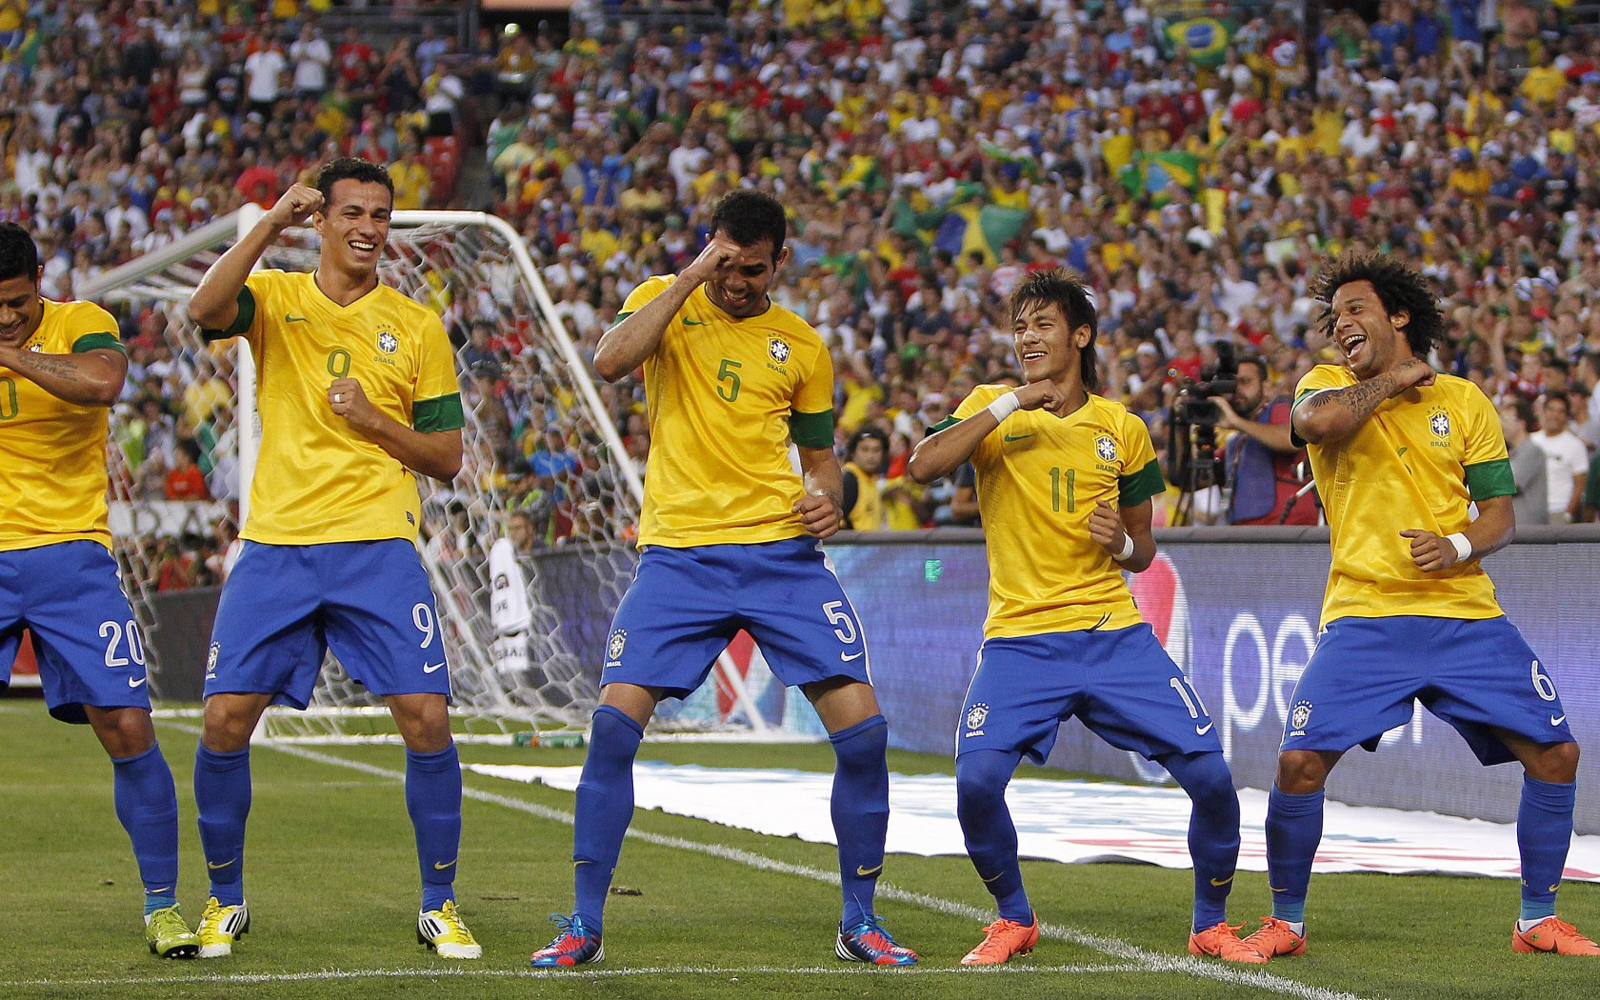 the brazil national football team represents brazil in international